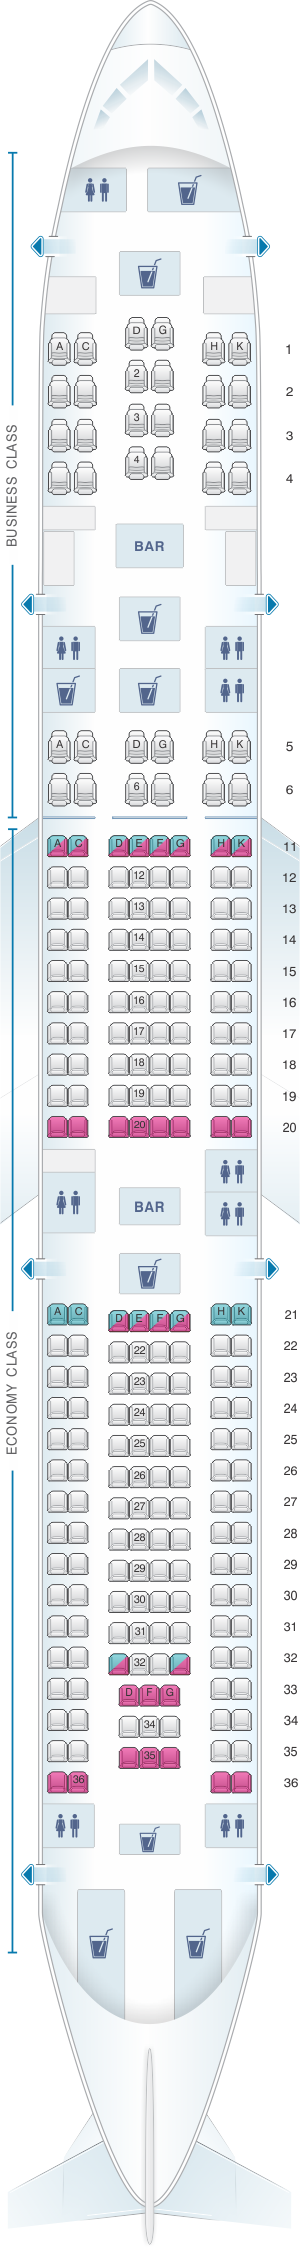 Seat map for Hi Fly Airbus A340 500 TFX/TFW 237pax